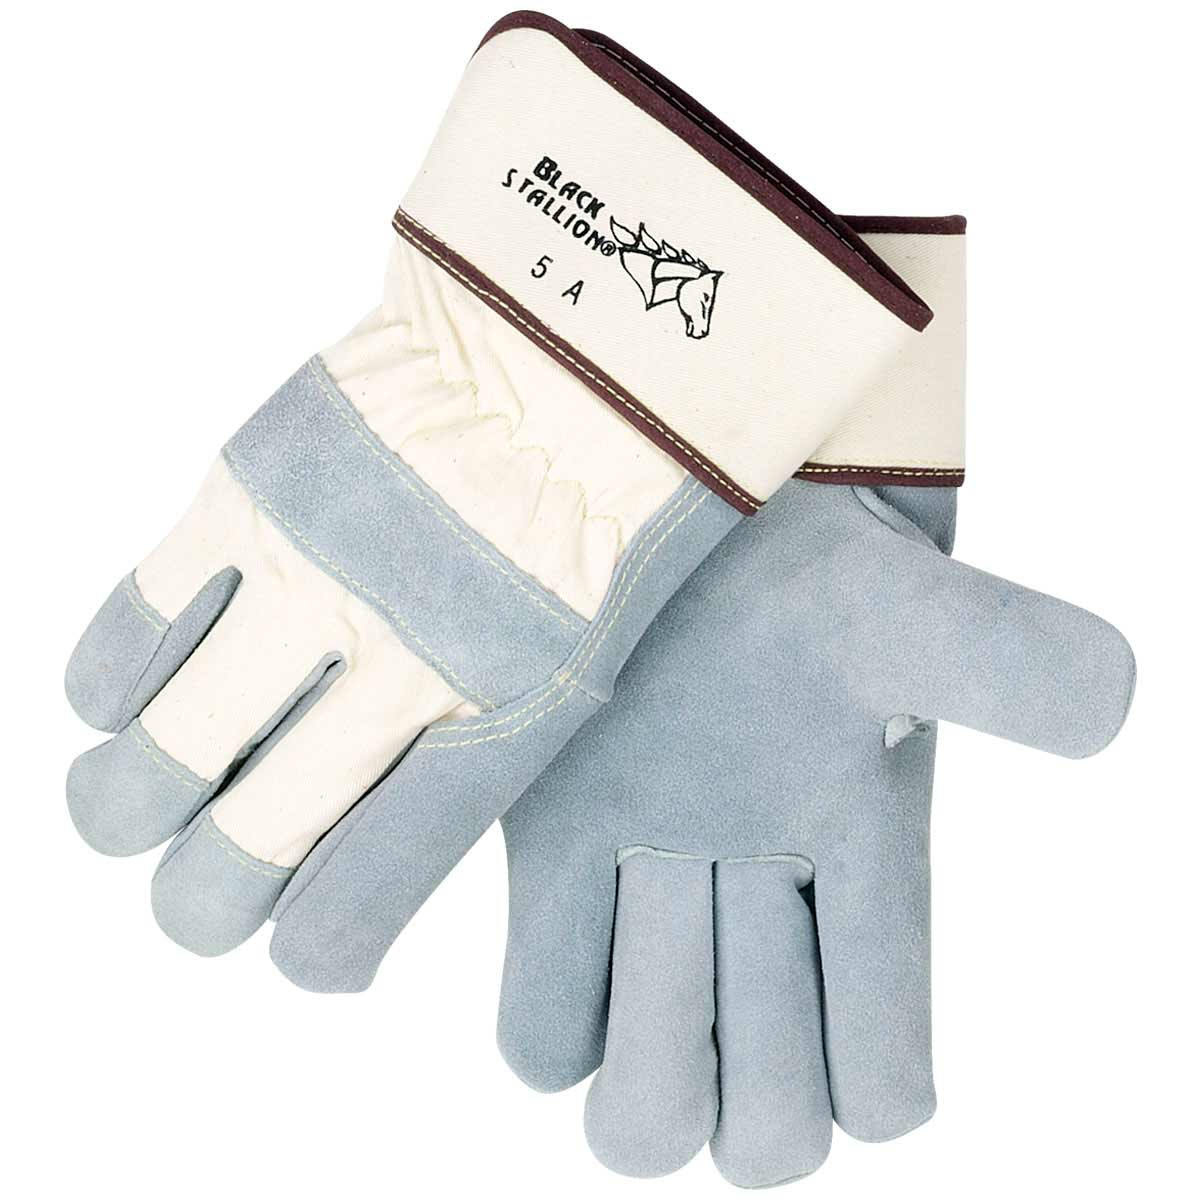 SIDE SPLIT COWHIDE - STRAP BACK PREMIUM LEATHER PALM WORK GLOVES. Pack 12. Small. 5AS